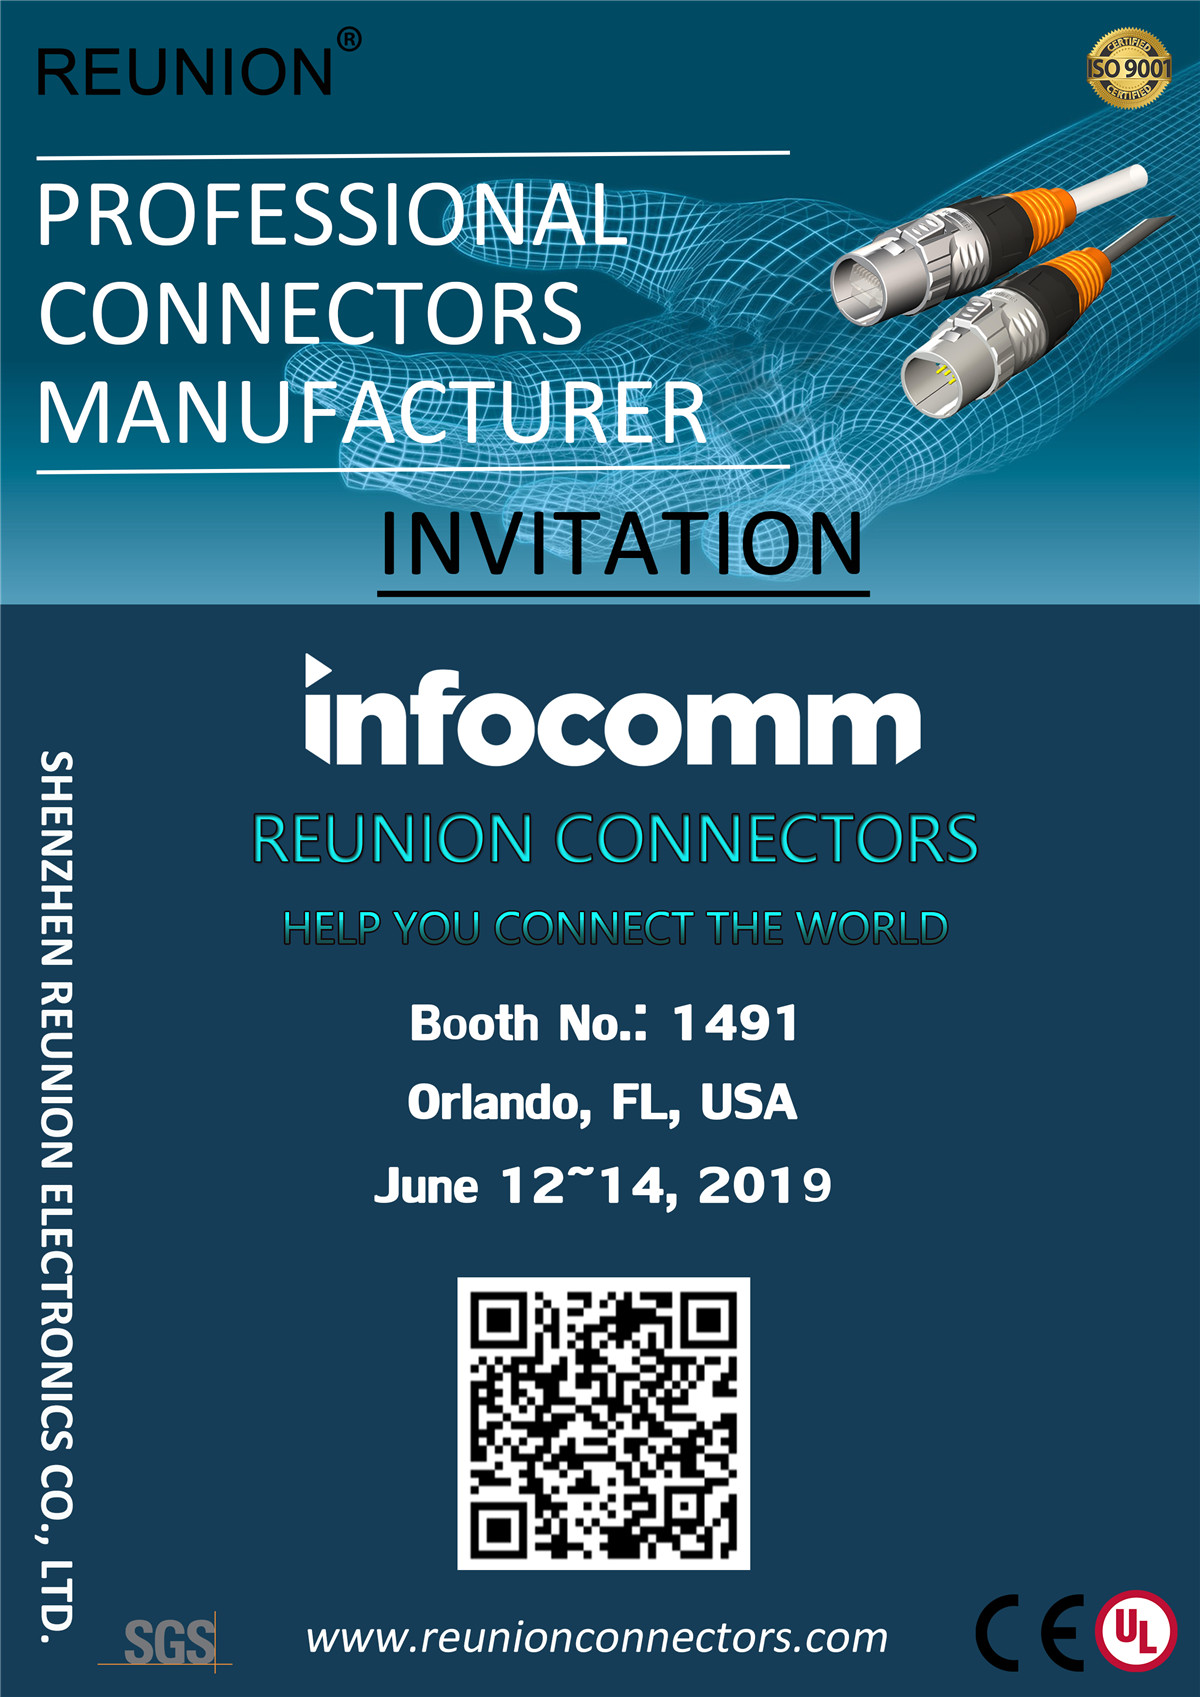 REUNION Connectors will attend Infocomm 2019